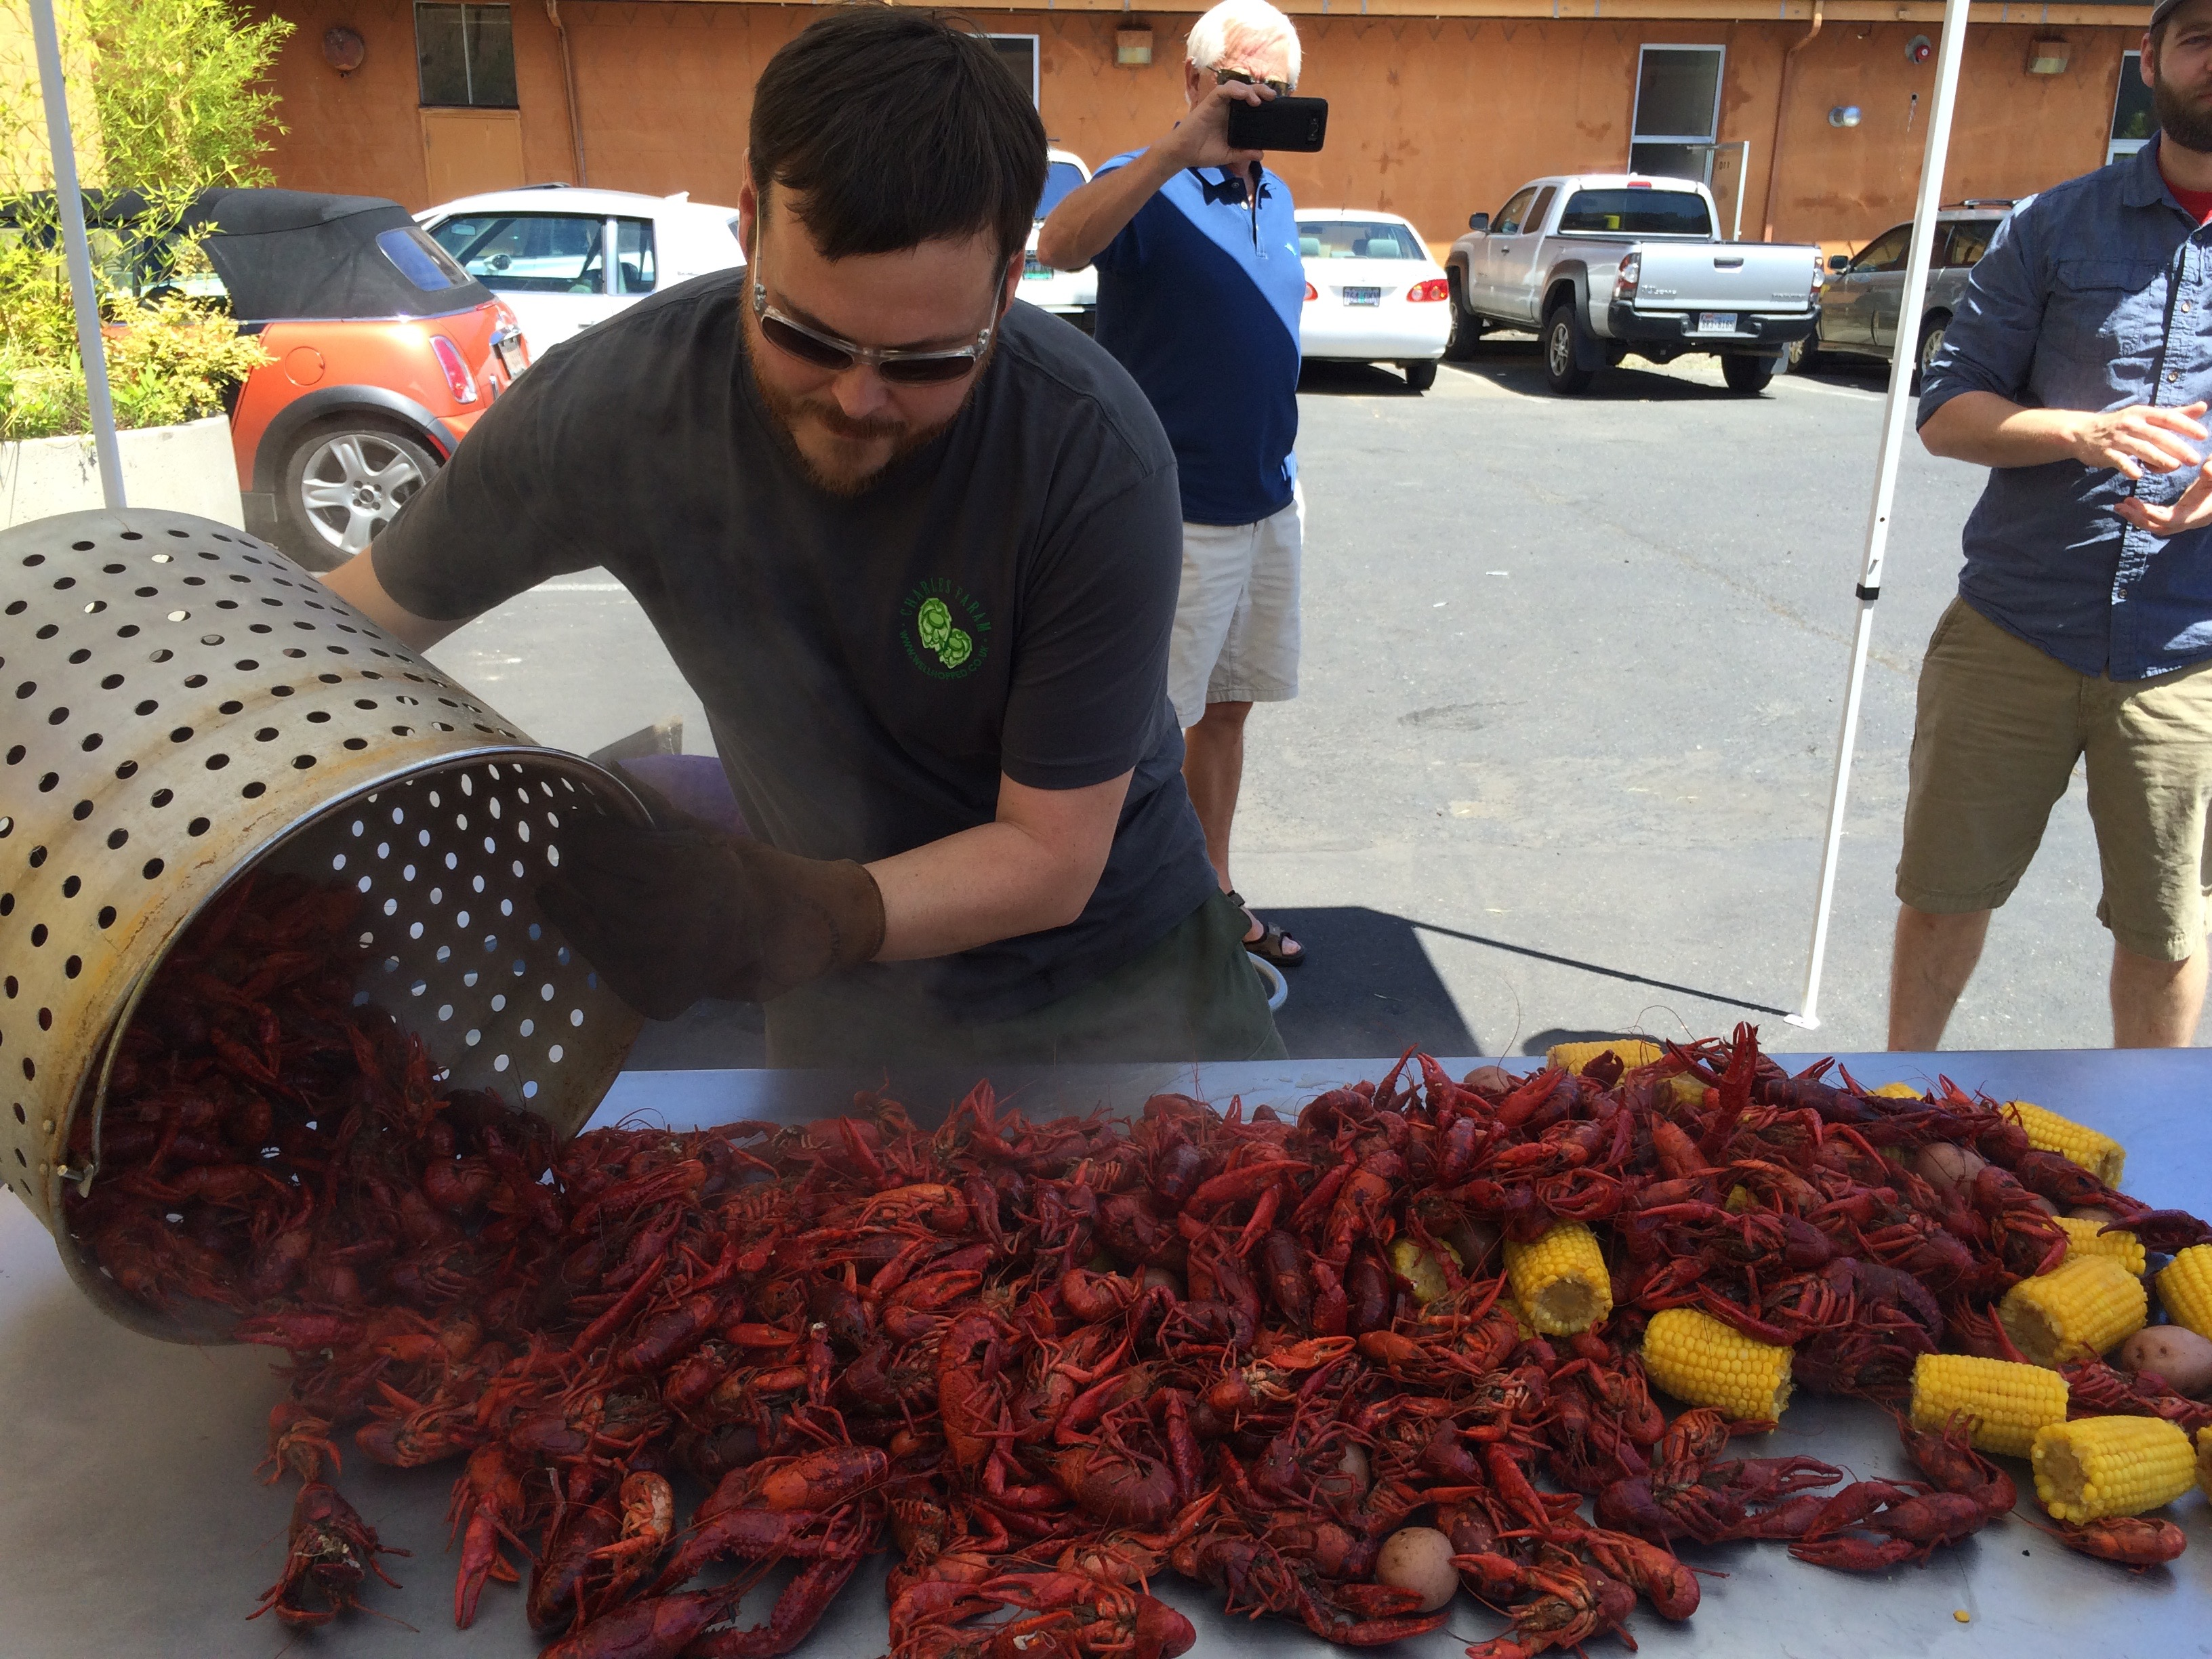 Dan Engler preparing the crawfish during the Occidental Brewing Crawfish Boil in 2015.